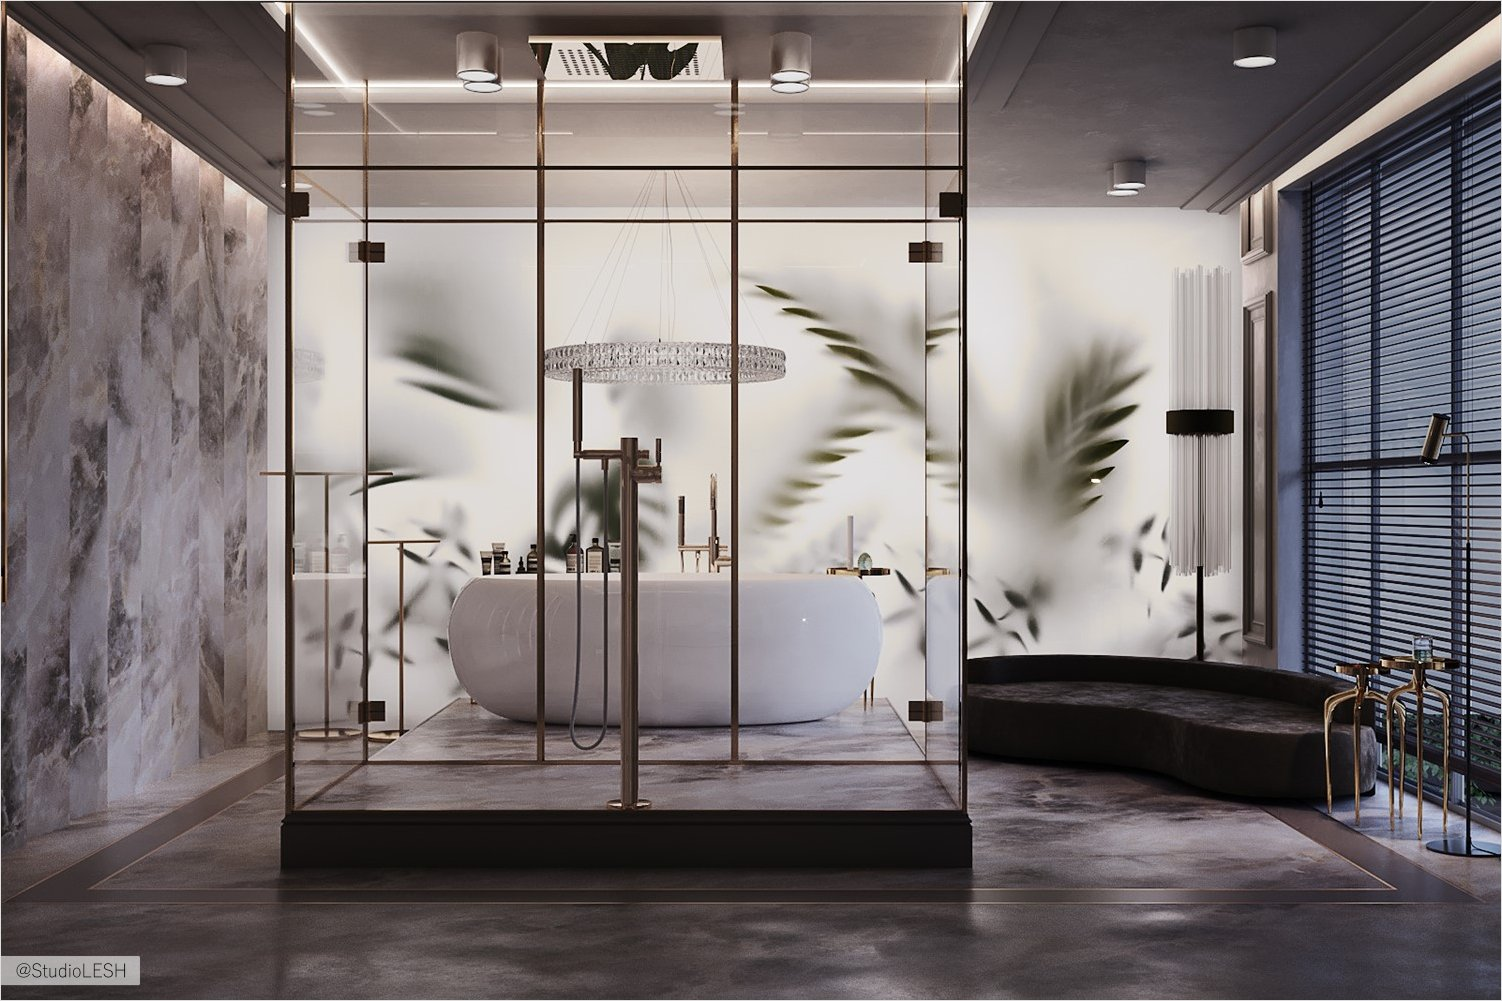 Tropical atmosphere created by frosted glass